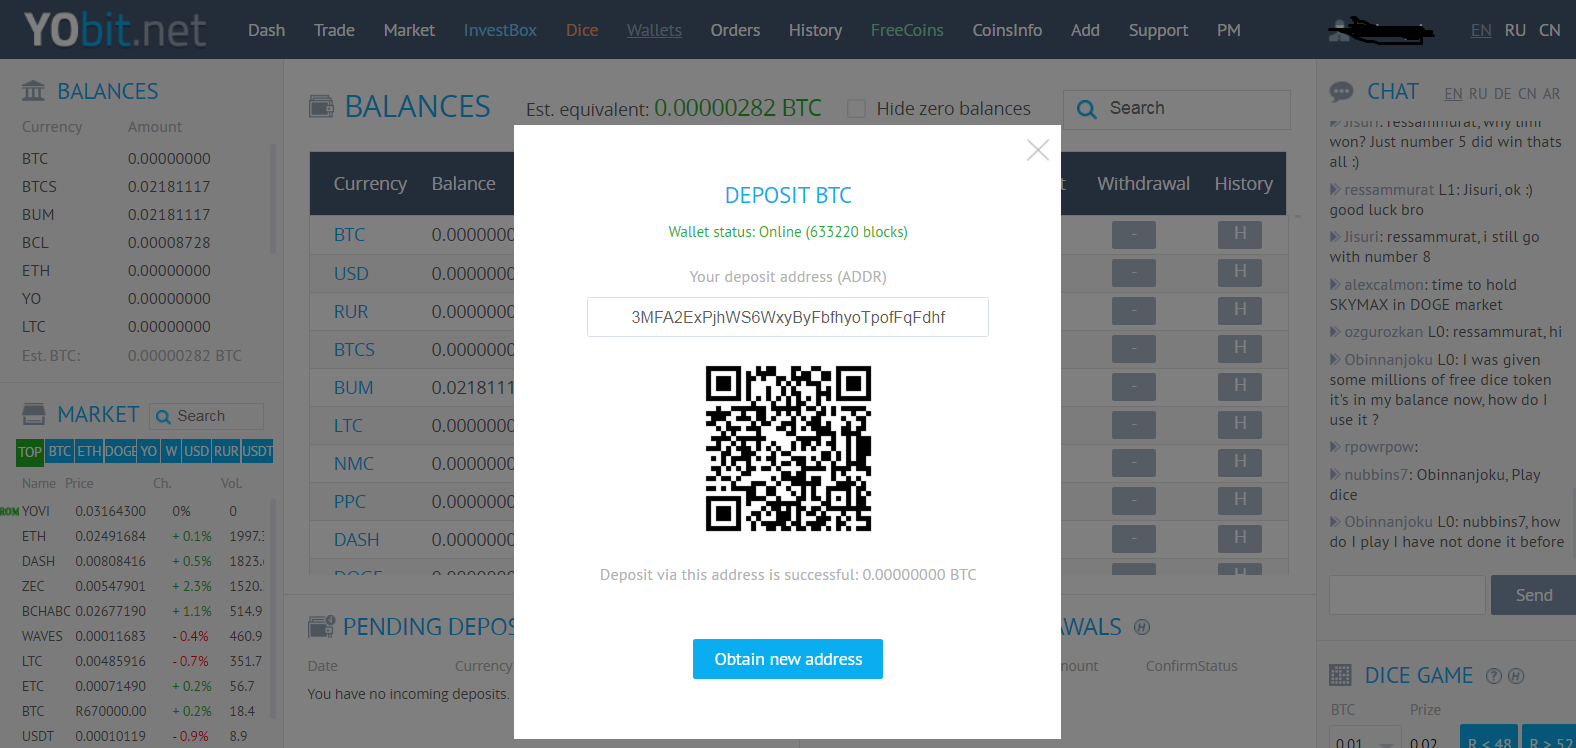 deposit - Yobit.net Crypto Exchange Review and Guide 2020